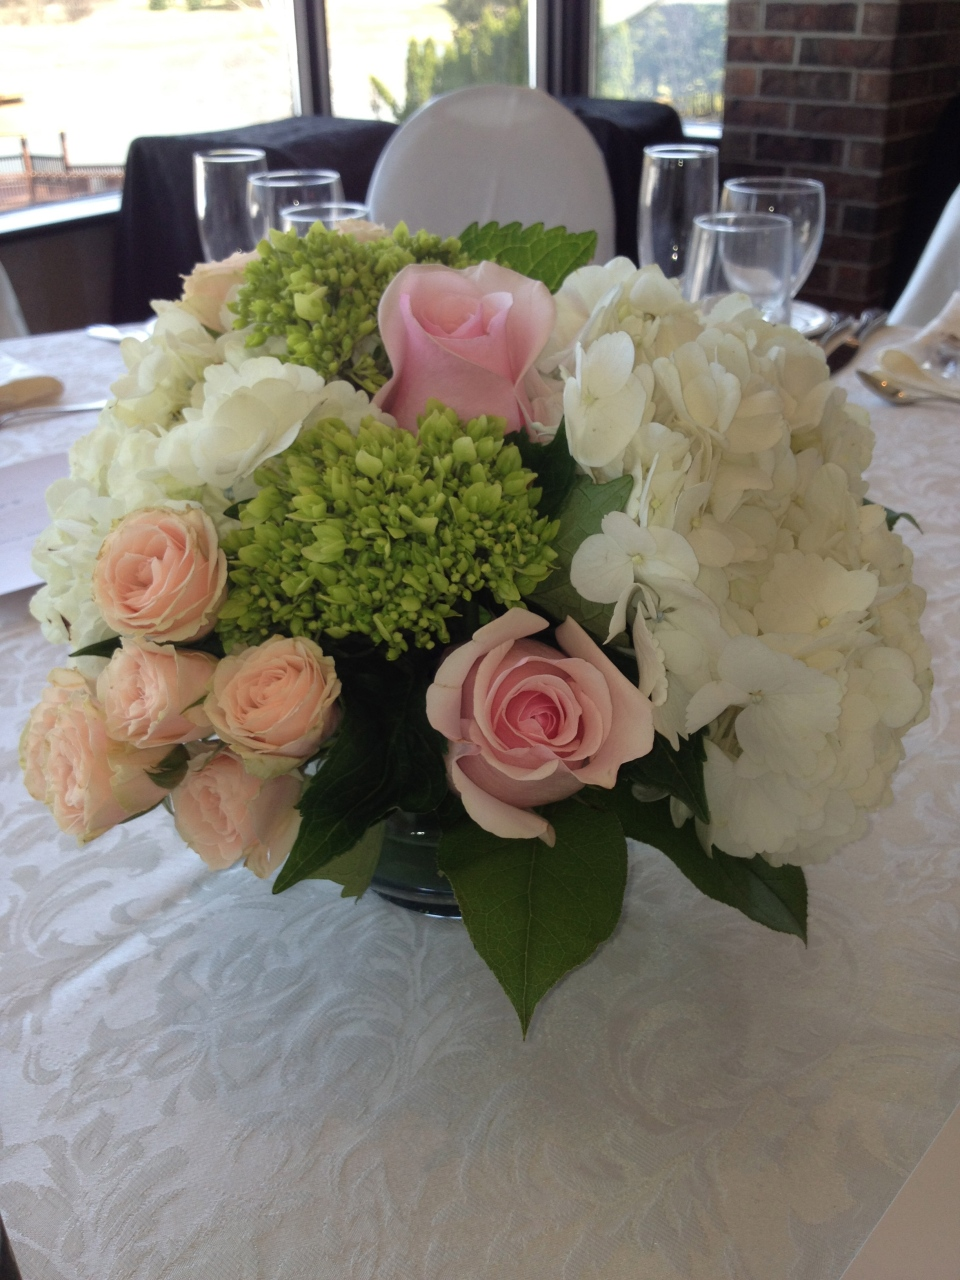 Low Centerpieces of white and green hydrangea with pink and peach roses,